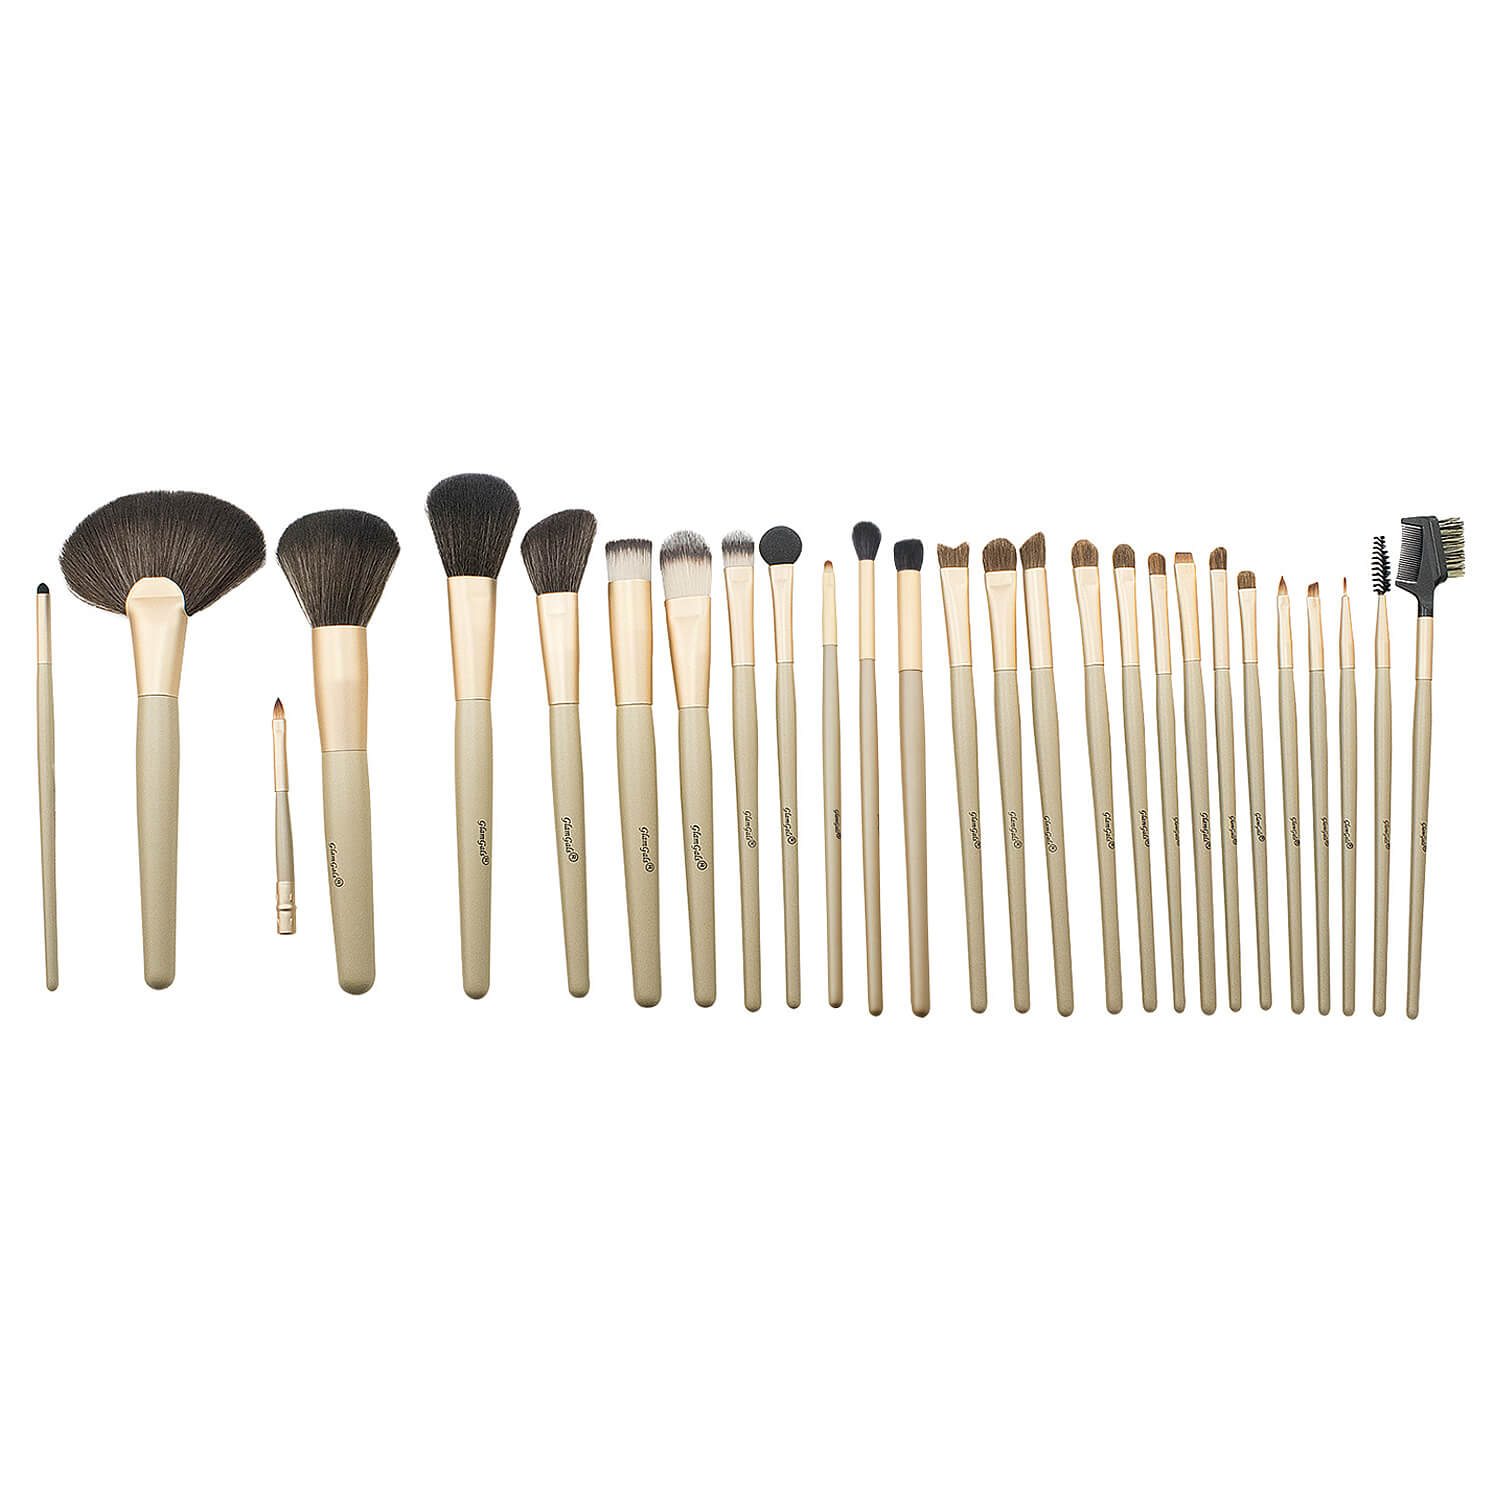 GlamGals 27 Pcs Brush Set - Black(550gm)